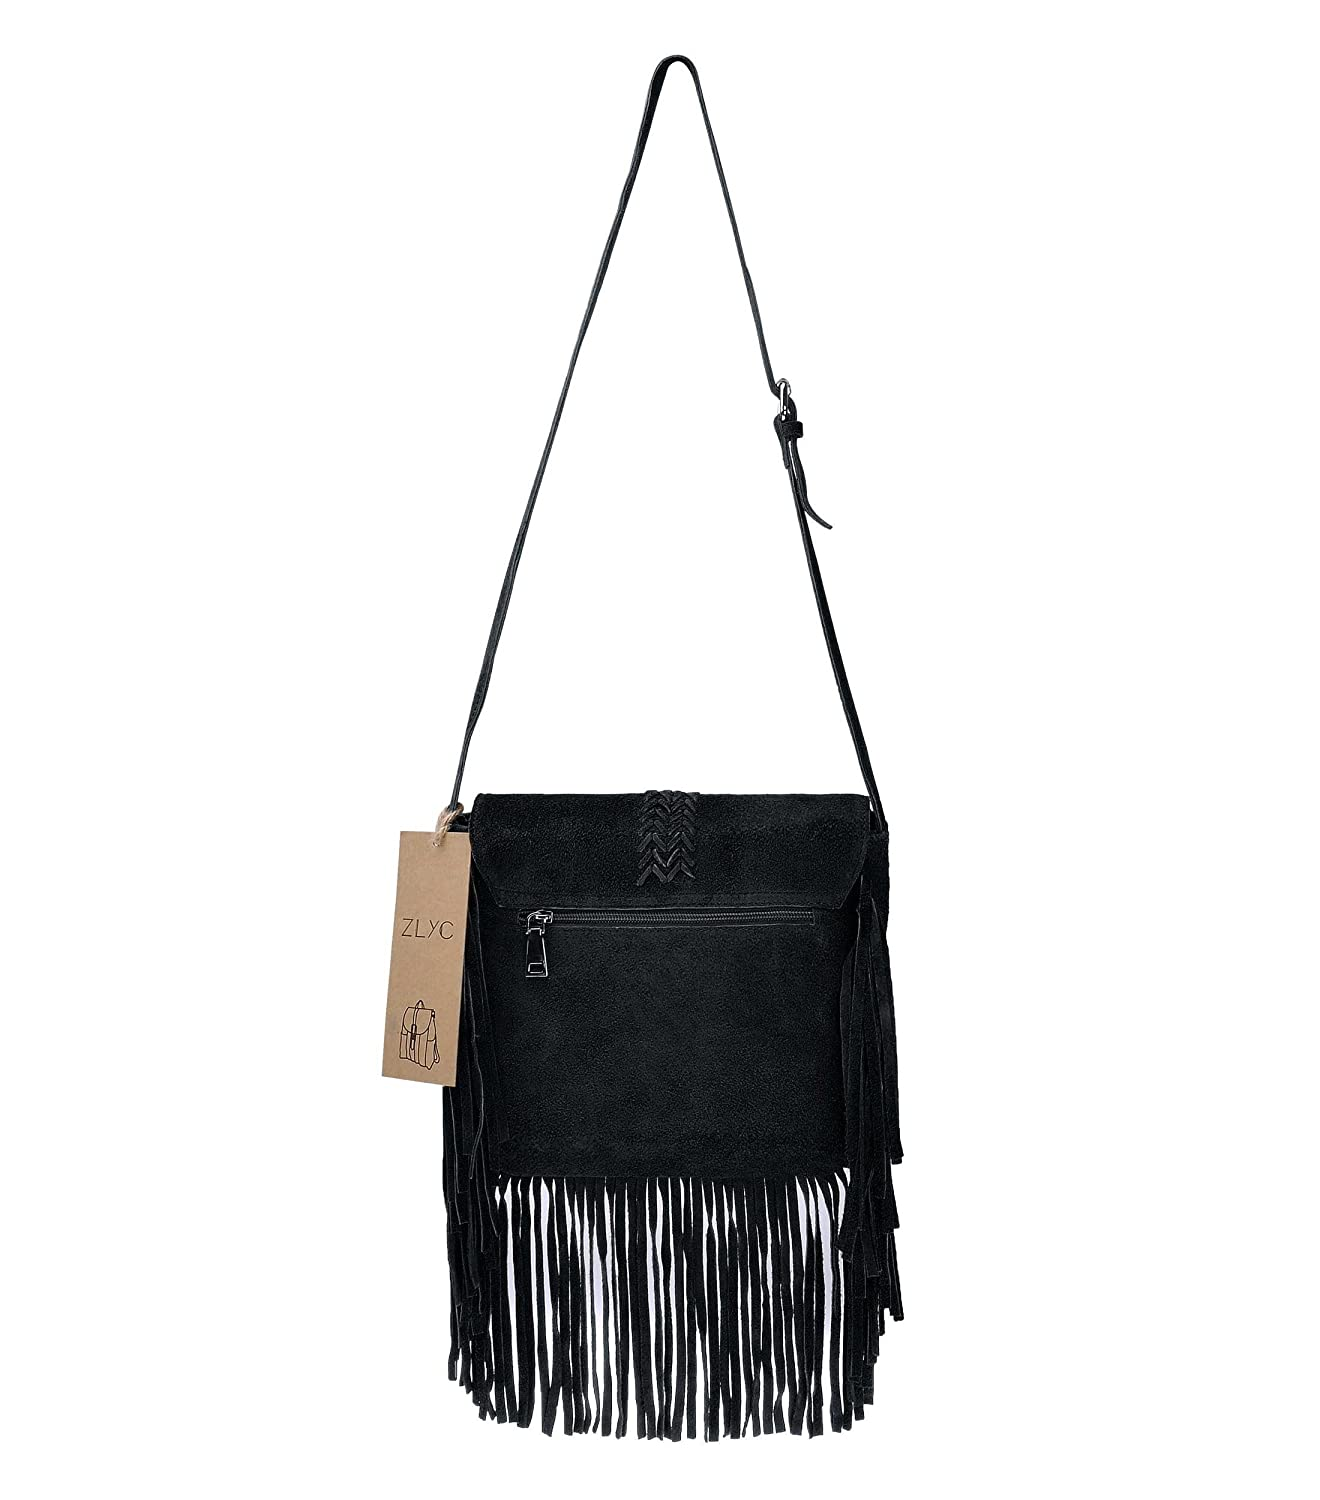 cba187dc3846 ZLYC Women Bohemian Nubuck Leather Fringe Bag Pouch Tribal Tassel Cross  Body Shoulder Bag